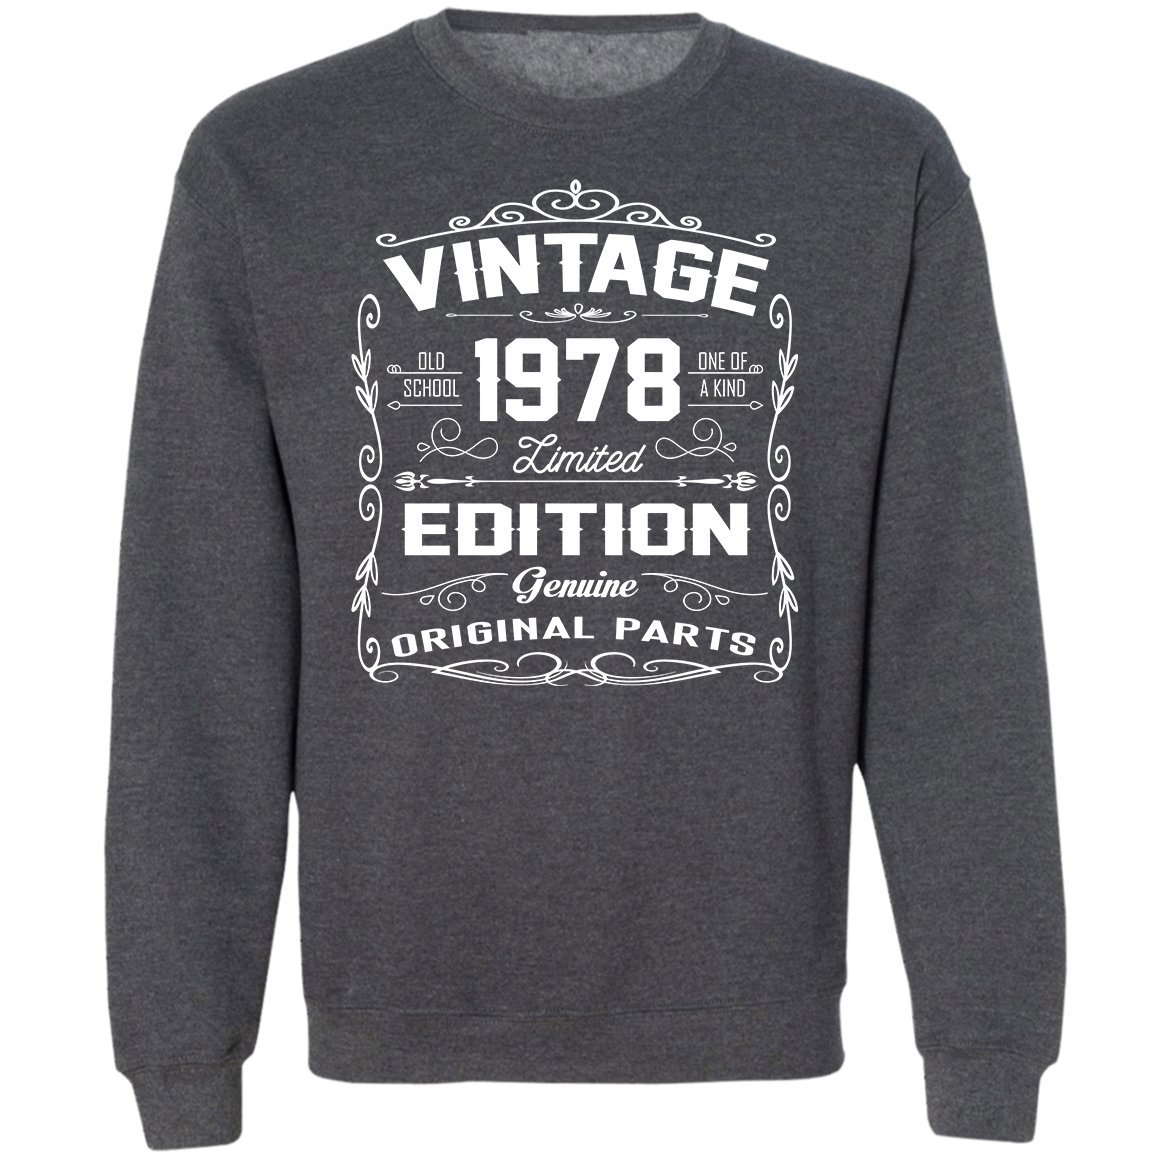 VADOBA Vintage 1978 Limited Edition Shirts Awesome Gifts For Birthday Sweatshirt